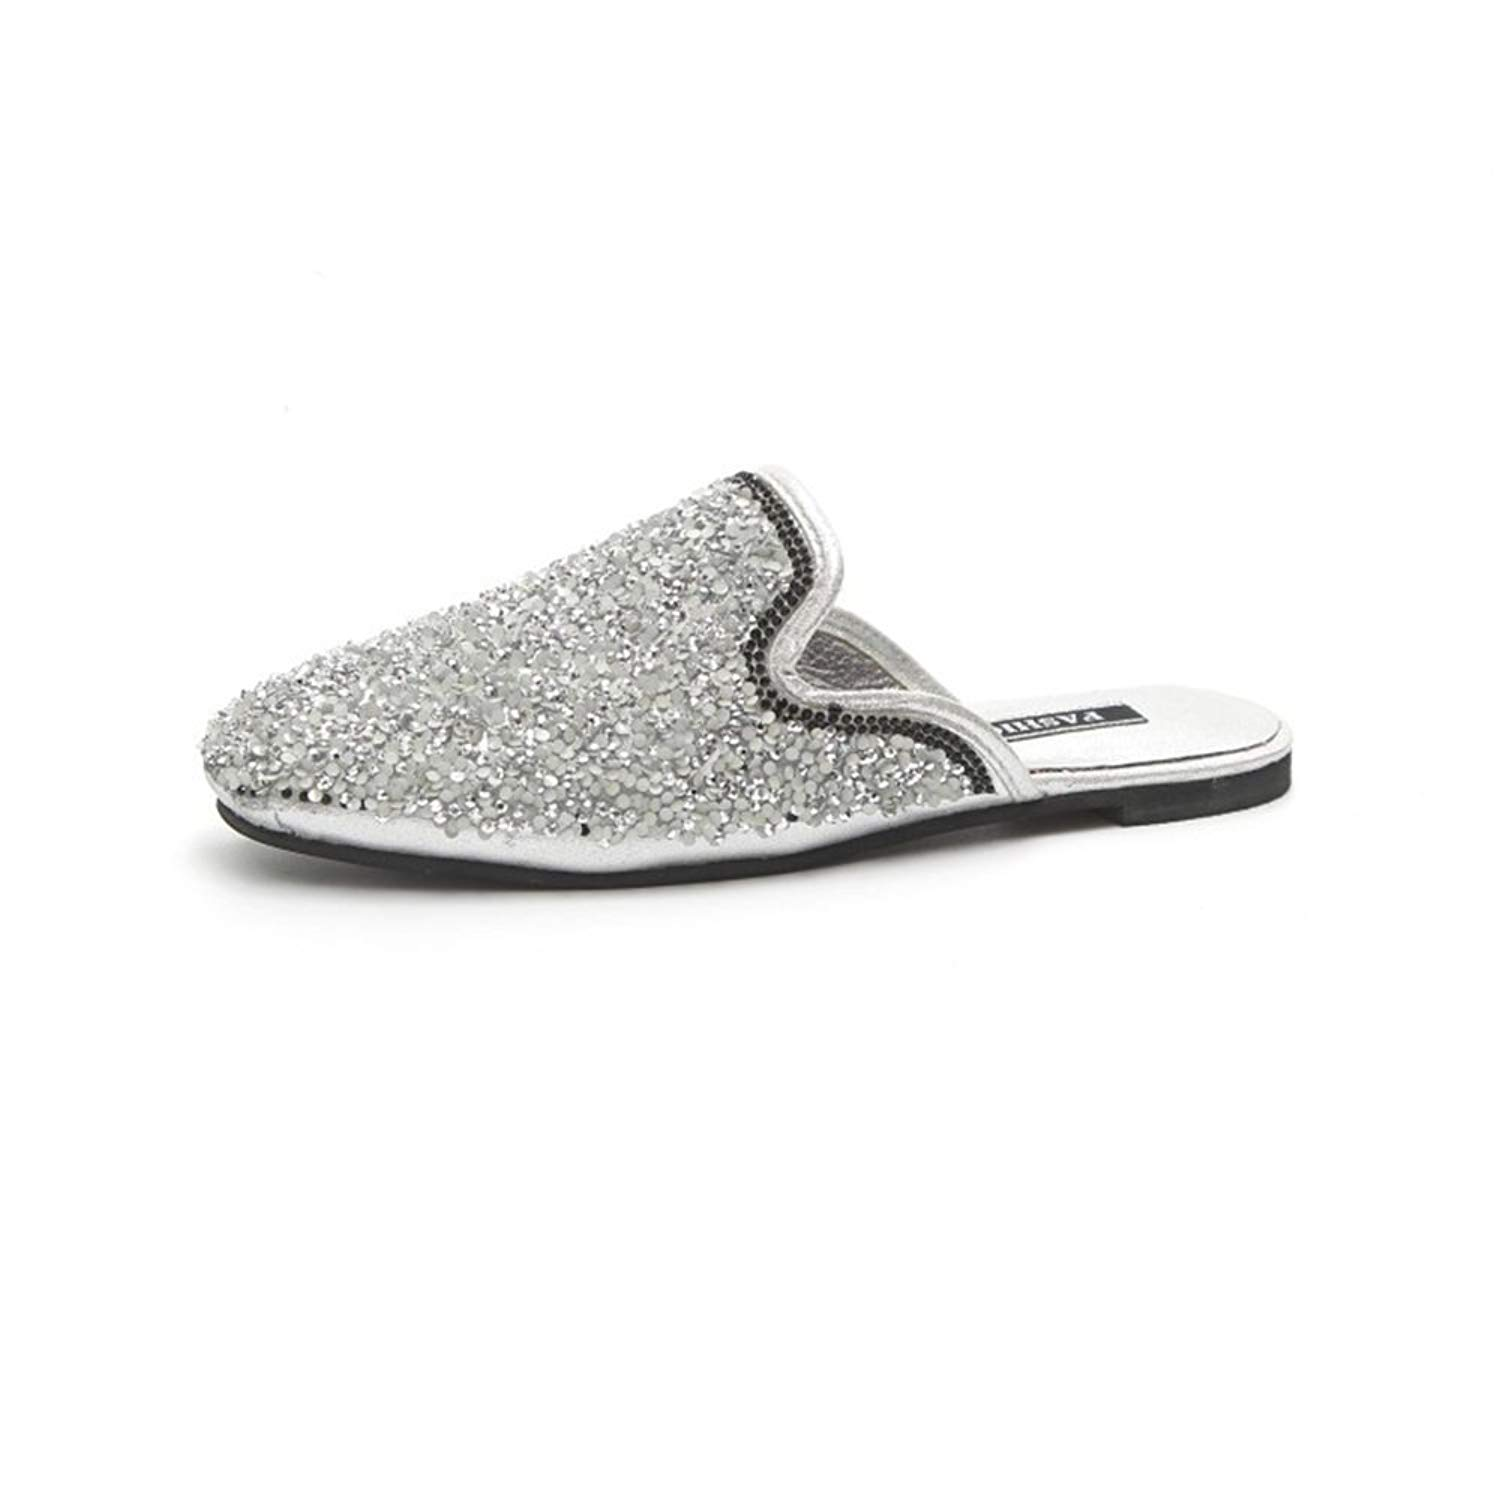 set adil Women Slip On Mules Pointed Toe Ruffle Trimmed Slides Backless Slippers Flats Sandals(silver-1-39/8.5 B(M) US Women)